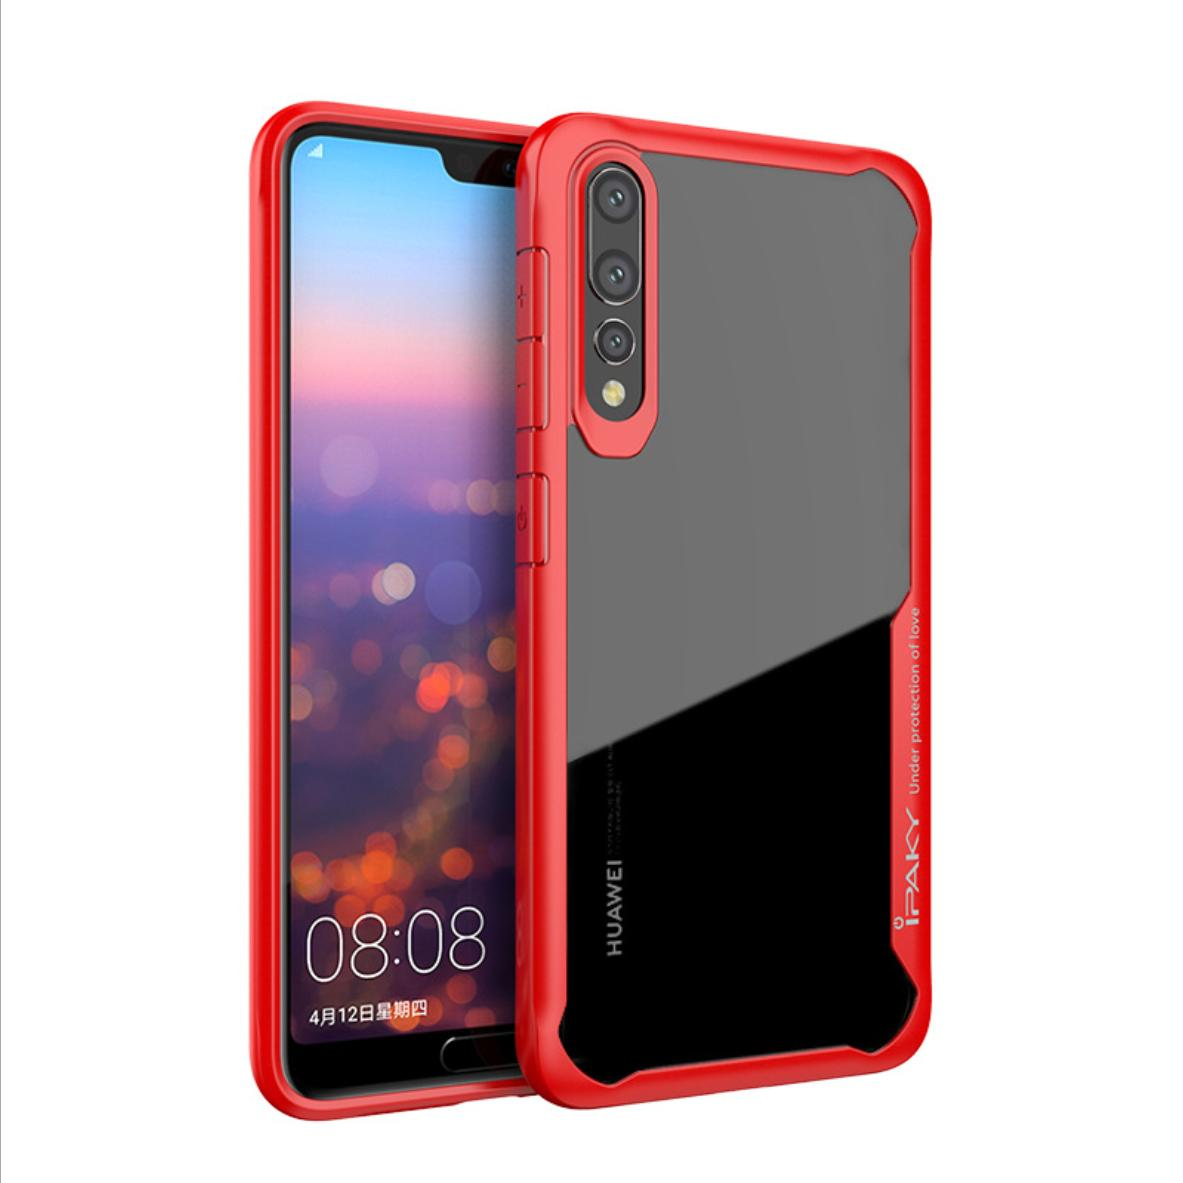 Ipaky Philippines Price List Phone Cases Hard Slim Case Matte Gea Baby Skin Xiaomi Redmi 3s 3pro Pro Hardcase Leather Covers For Sale Lazada